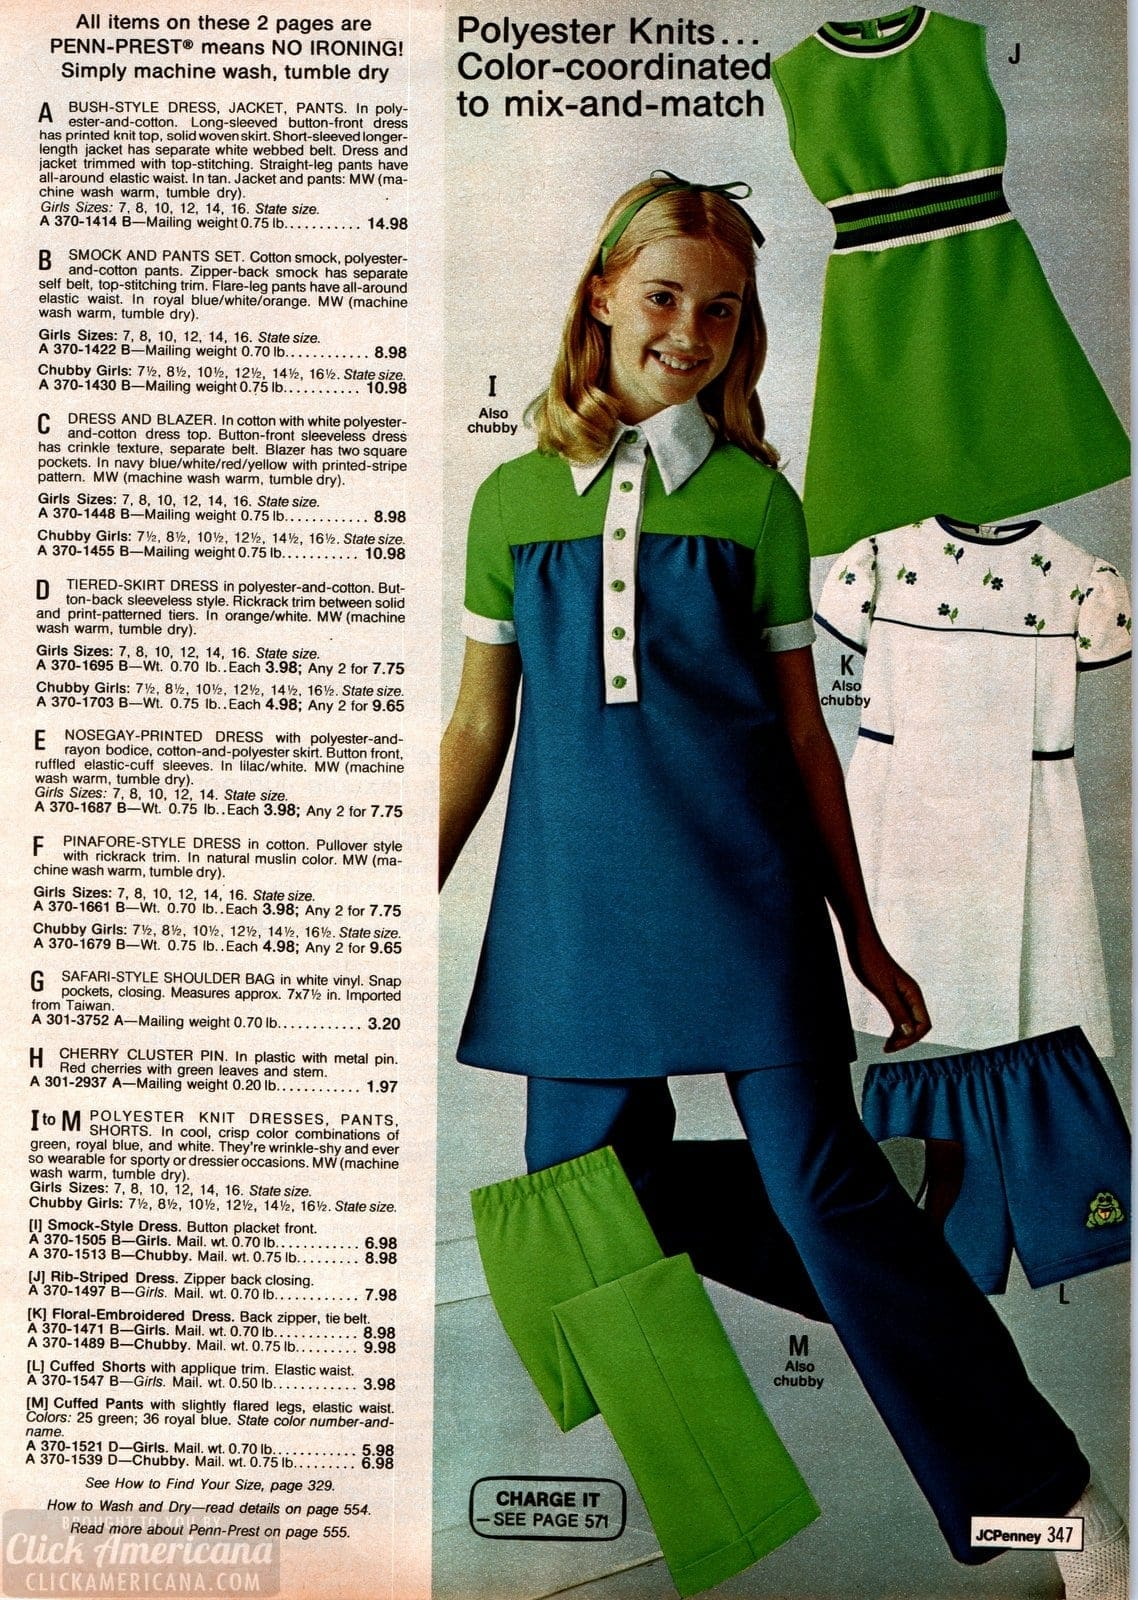 70s polyester knit clothing for girls